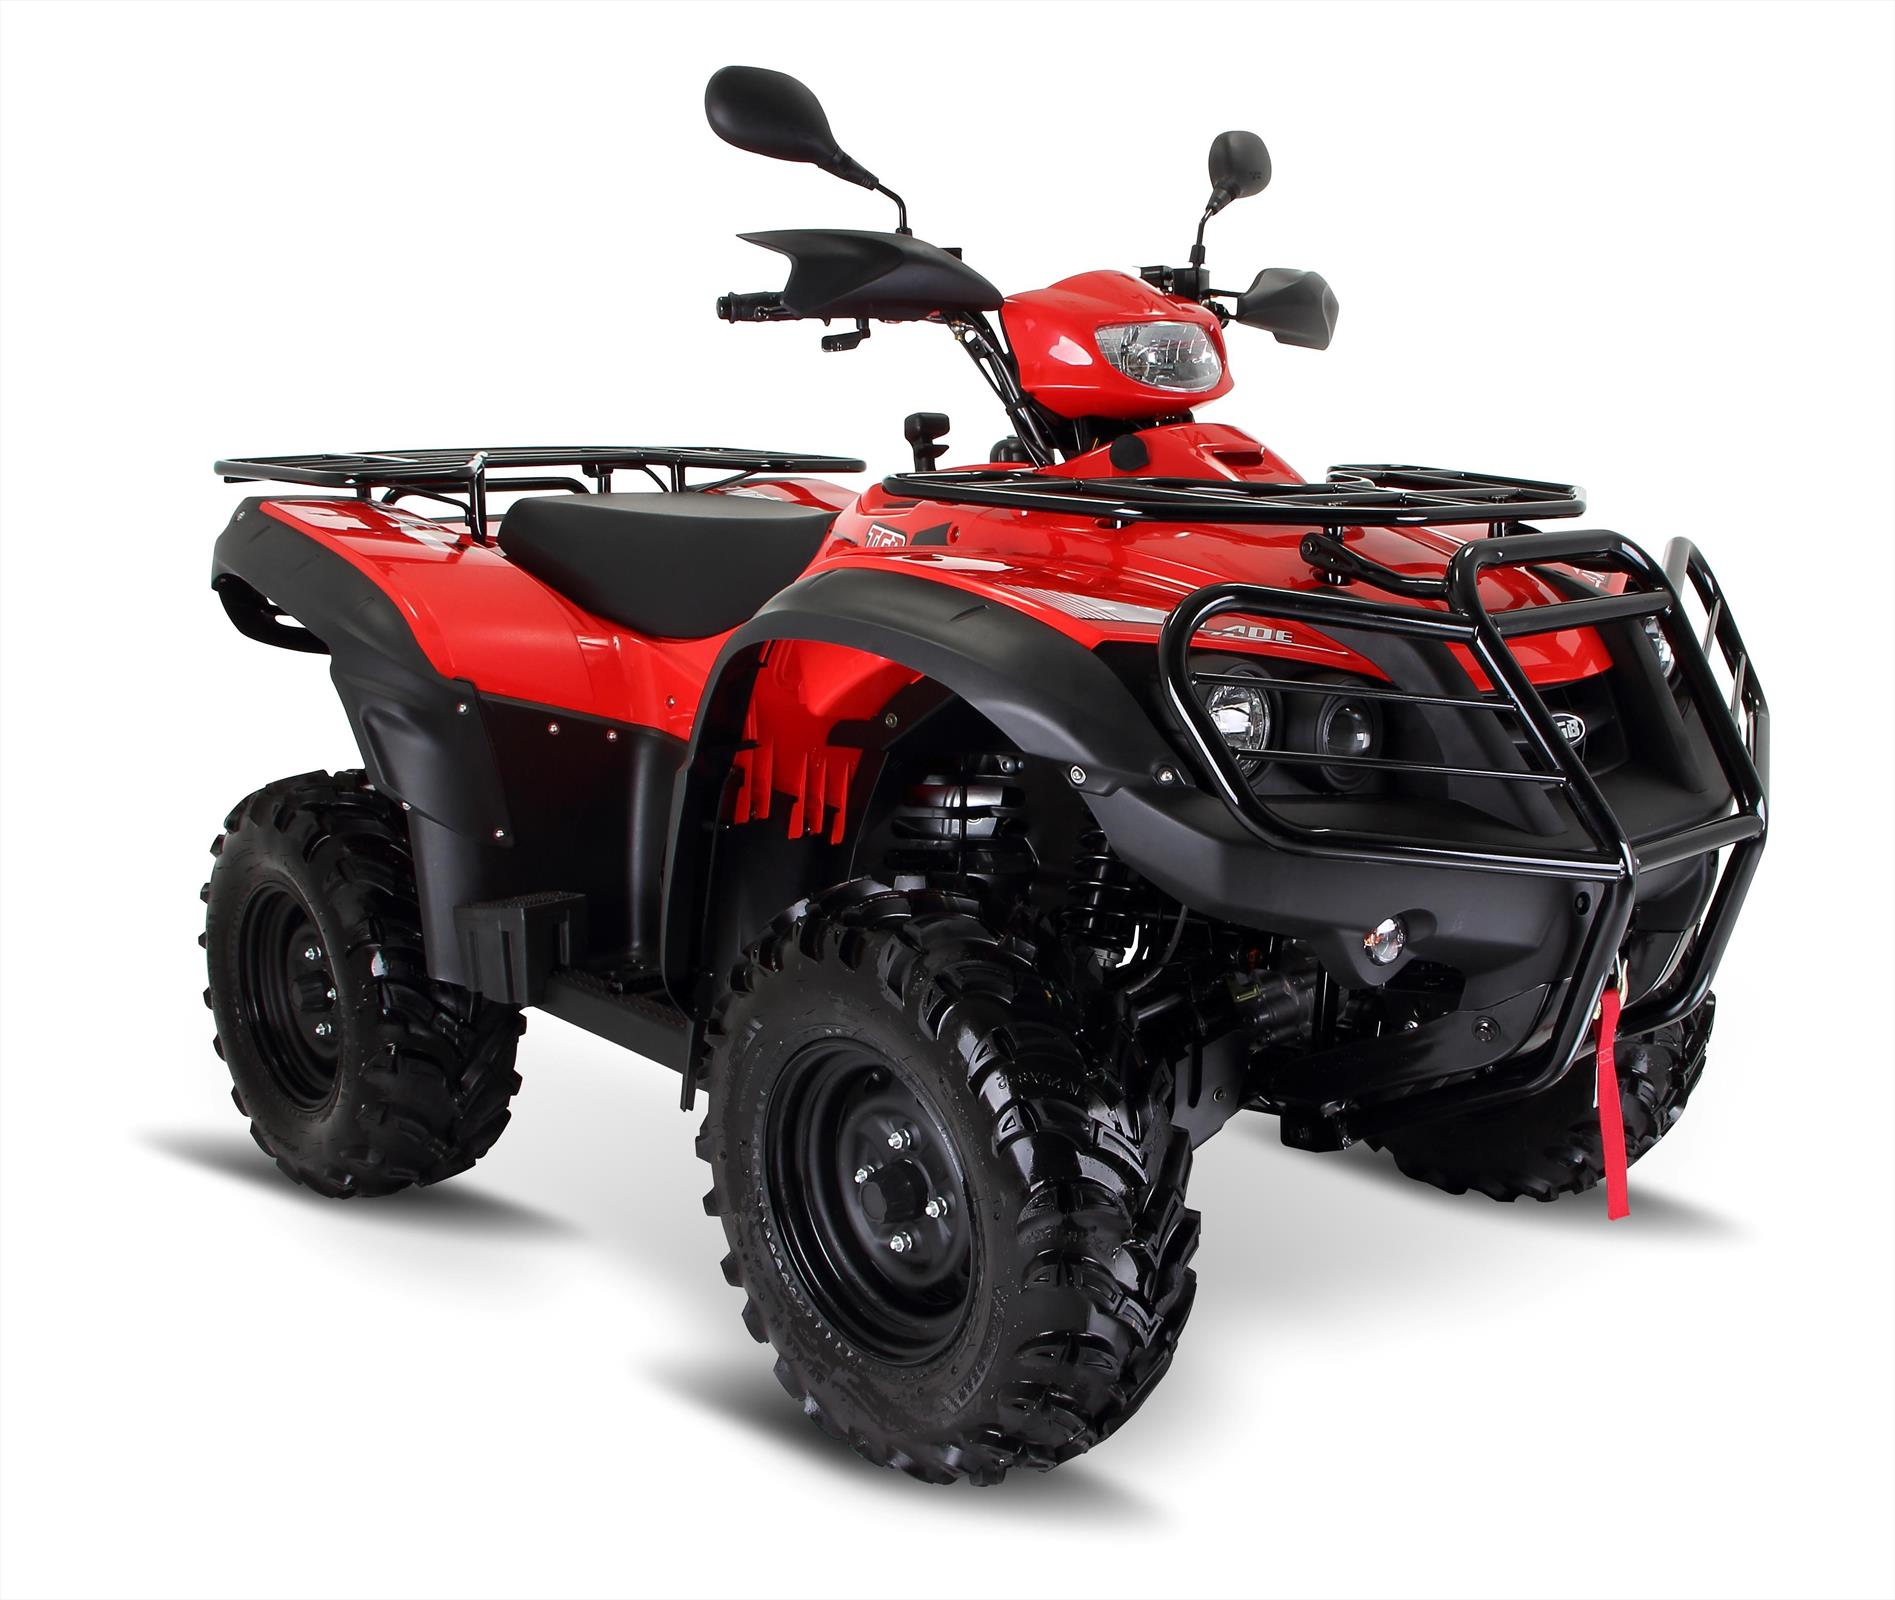 tgb blade 550sl irs 4x4 red utility agricultural quad bike. Black Bedroom Furniture Sets. Home Design Ideas